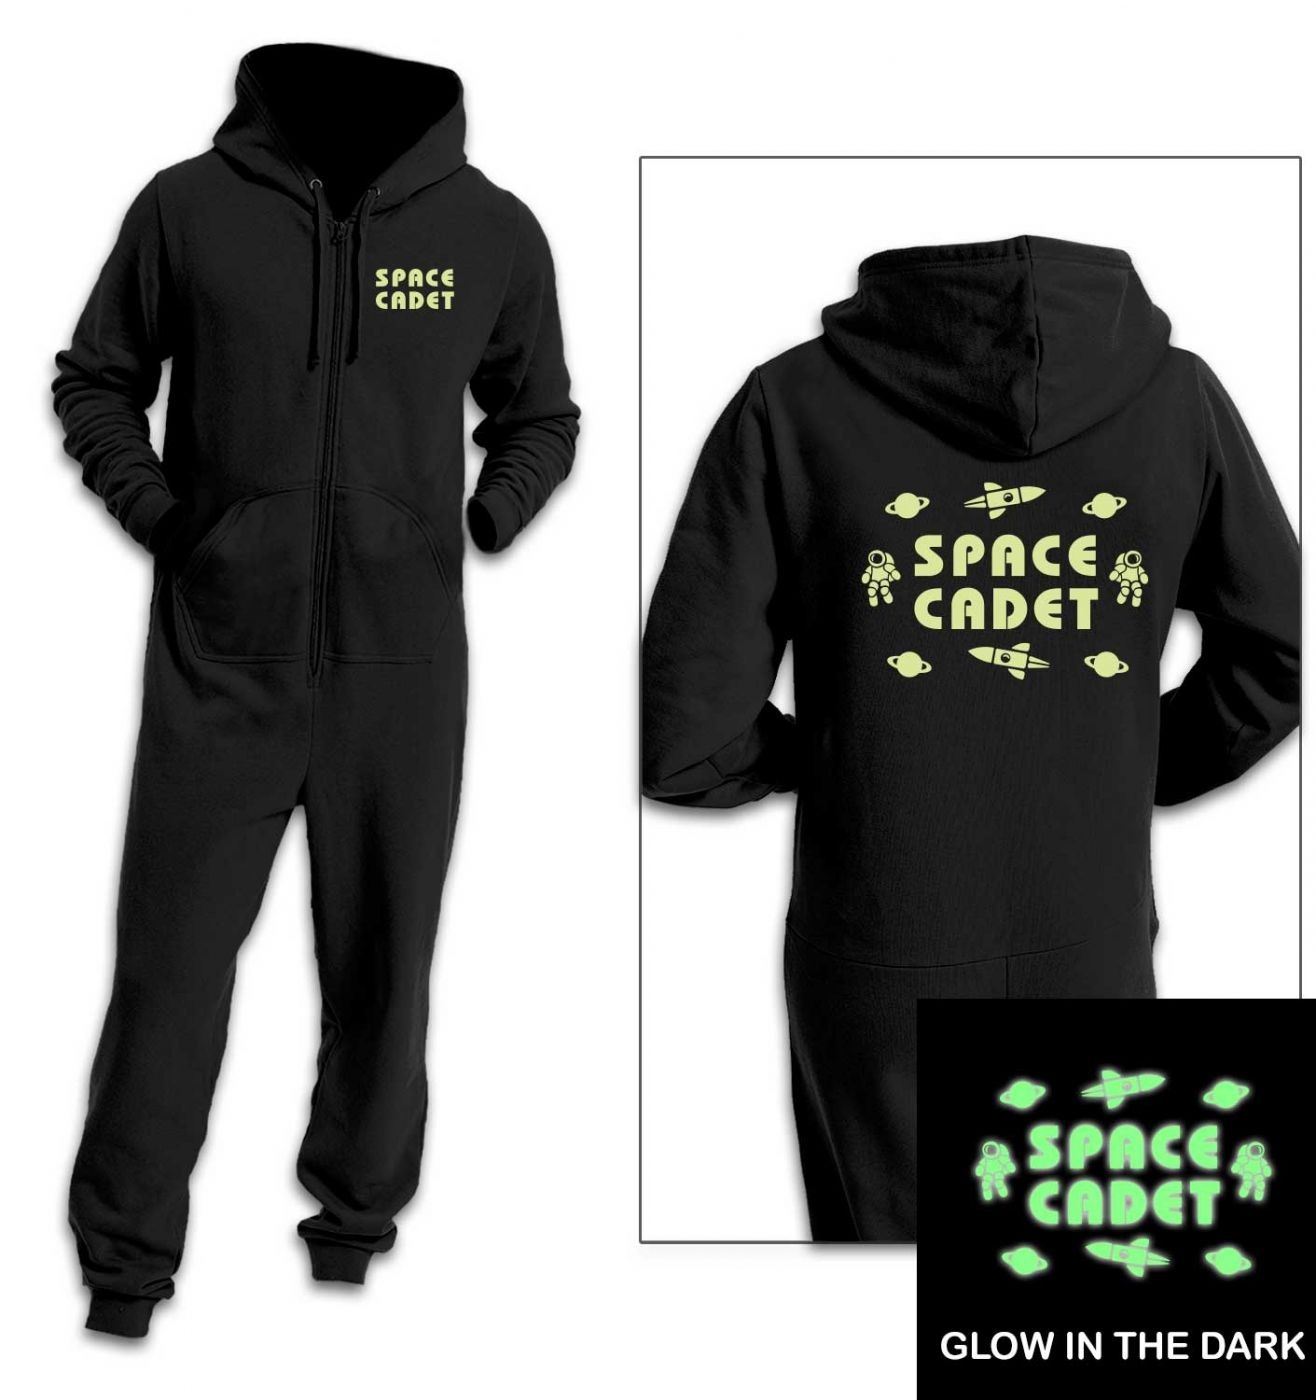 Space Cadet onesie (glow in the dark)